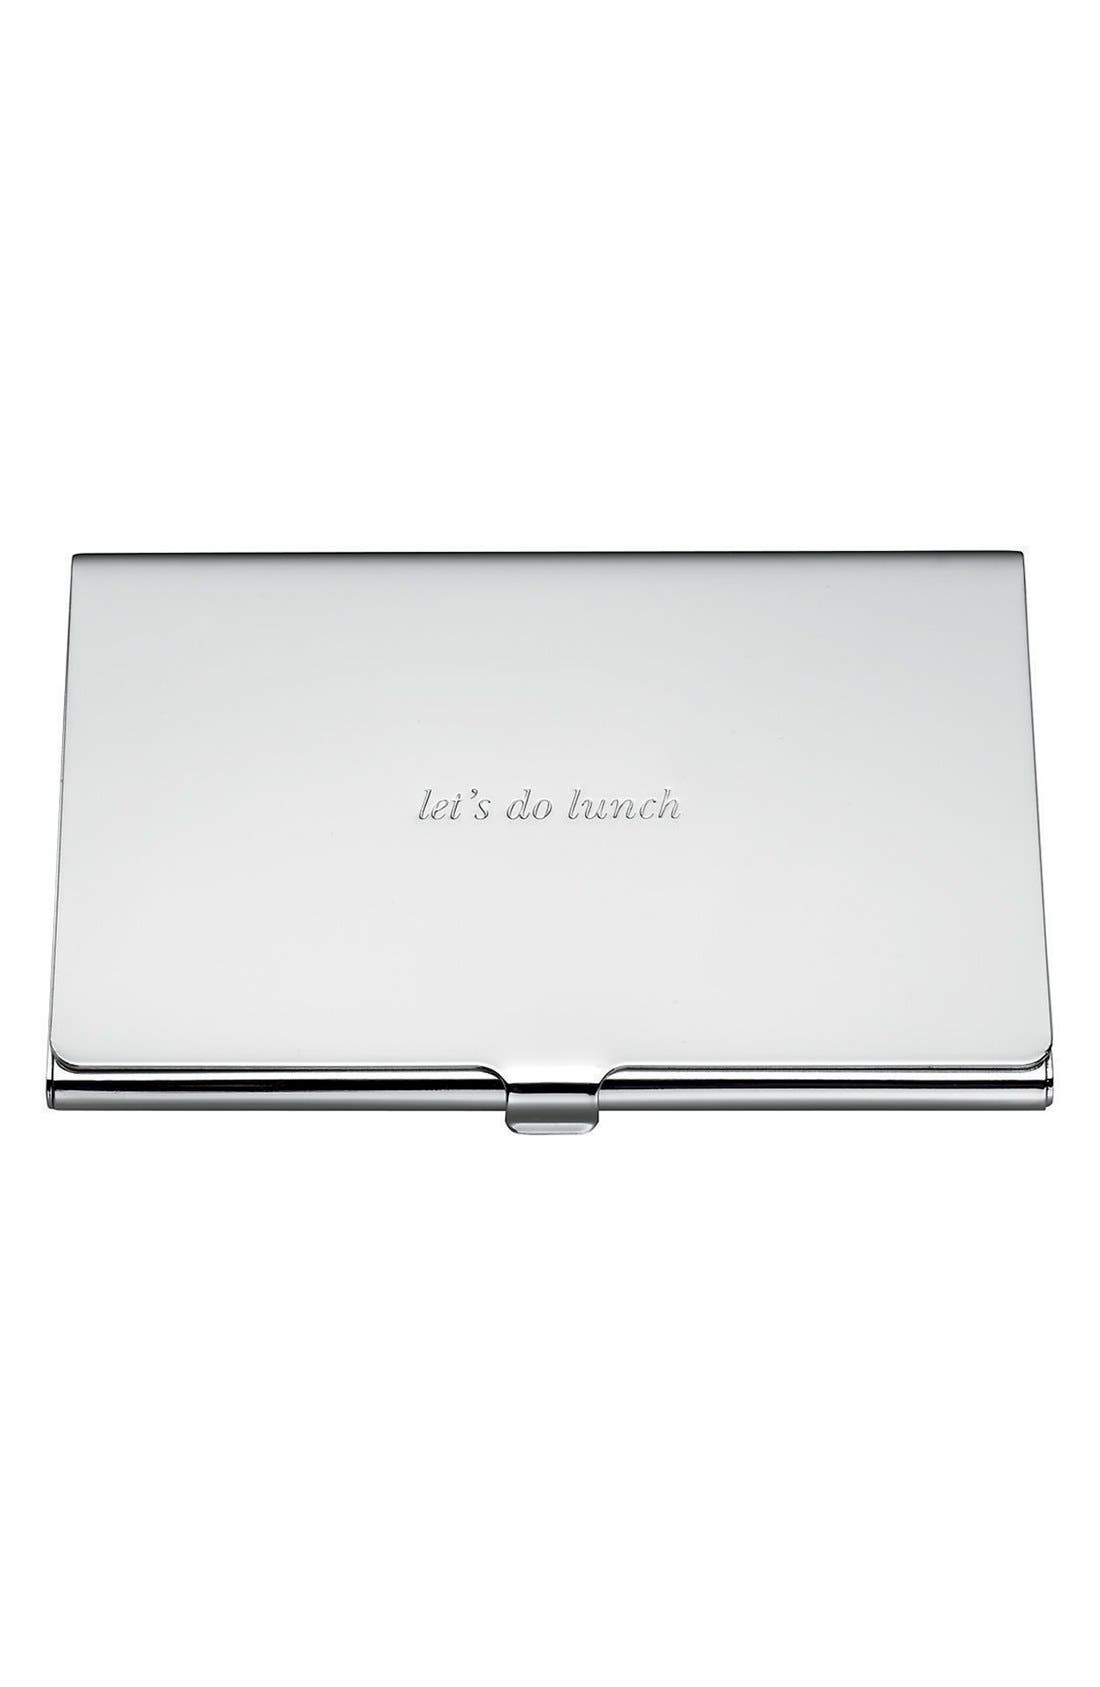 KATE SPADE NEW YORK, let's do lunch business card holder, Main thumbnail 1, color, 040